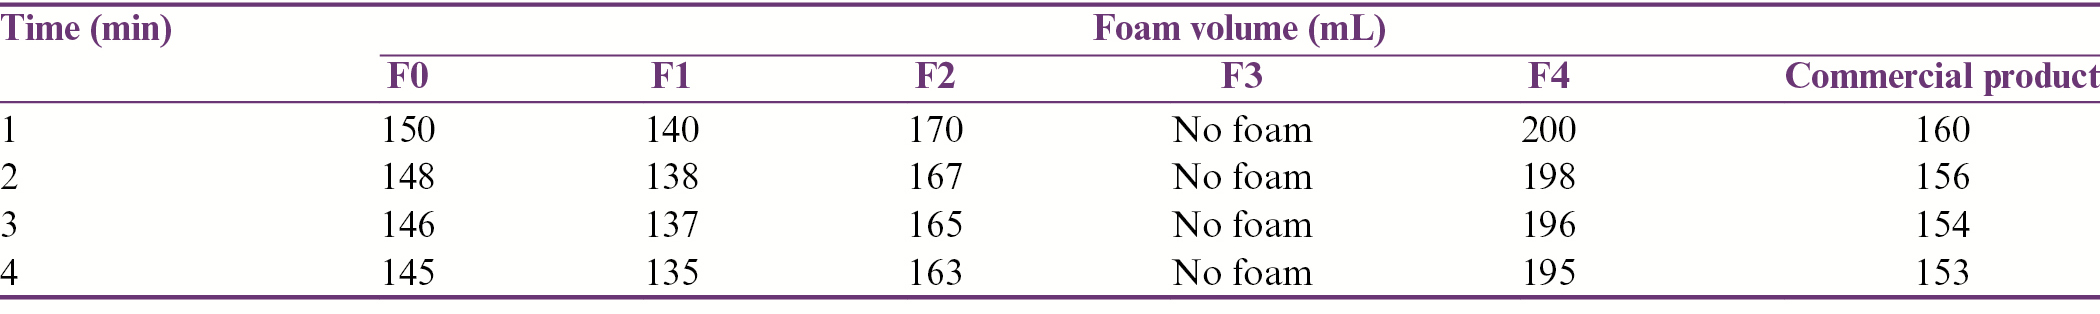 Table 9: Foam stability of different herbal shampoo formulations and a commercial product